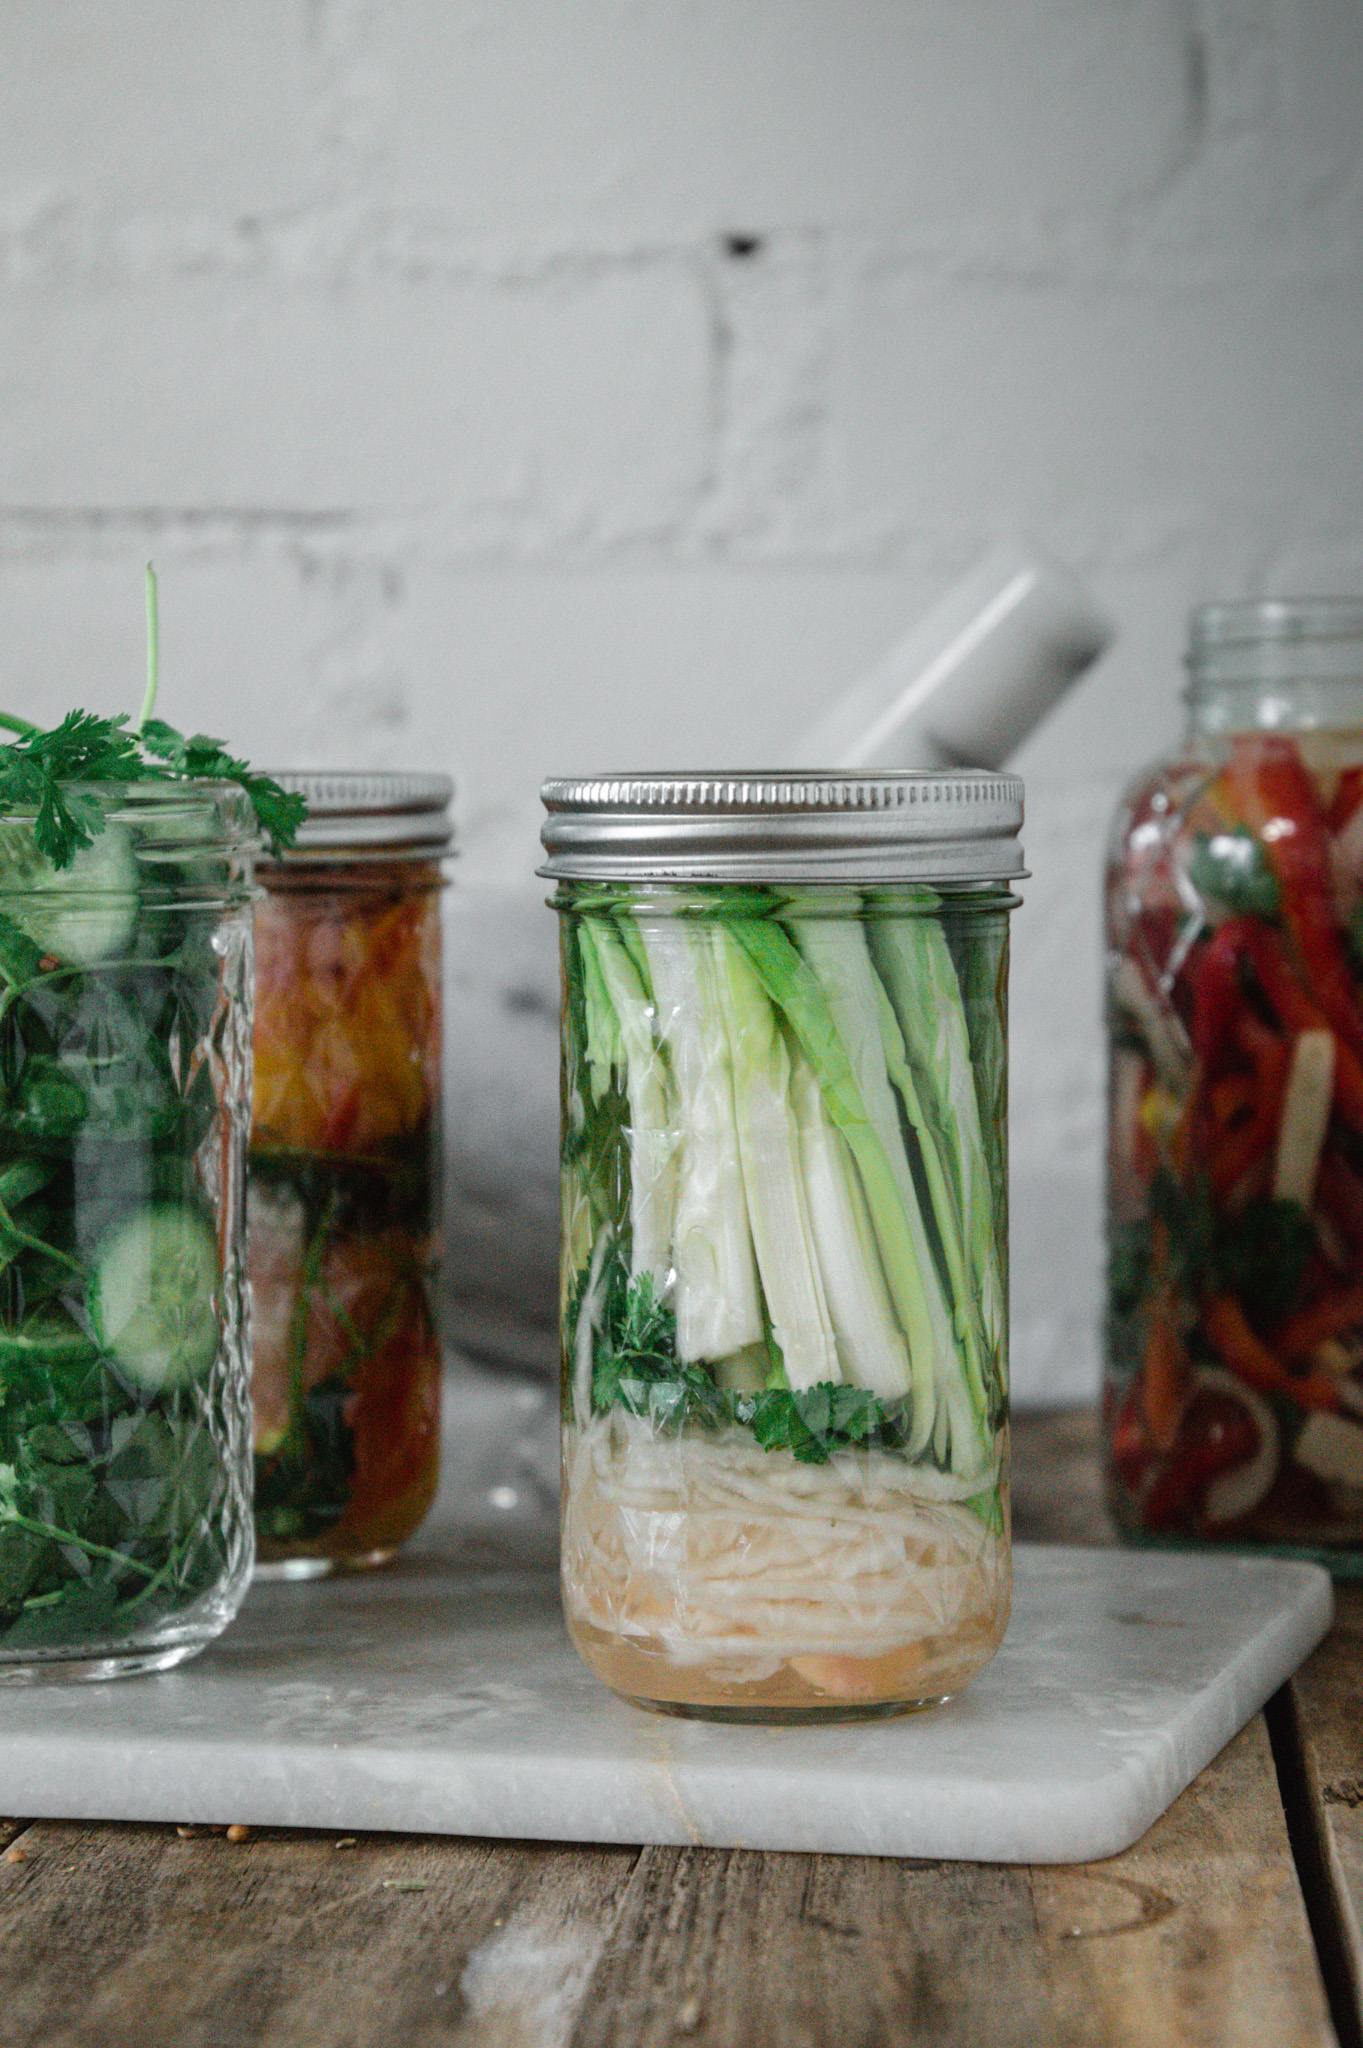 Green onions make surprising but beautiful pickles!